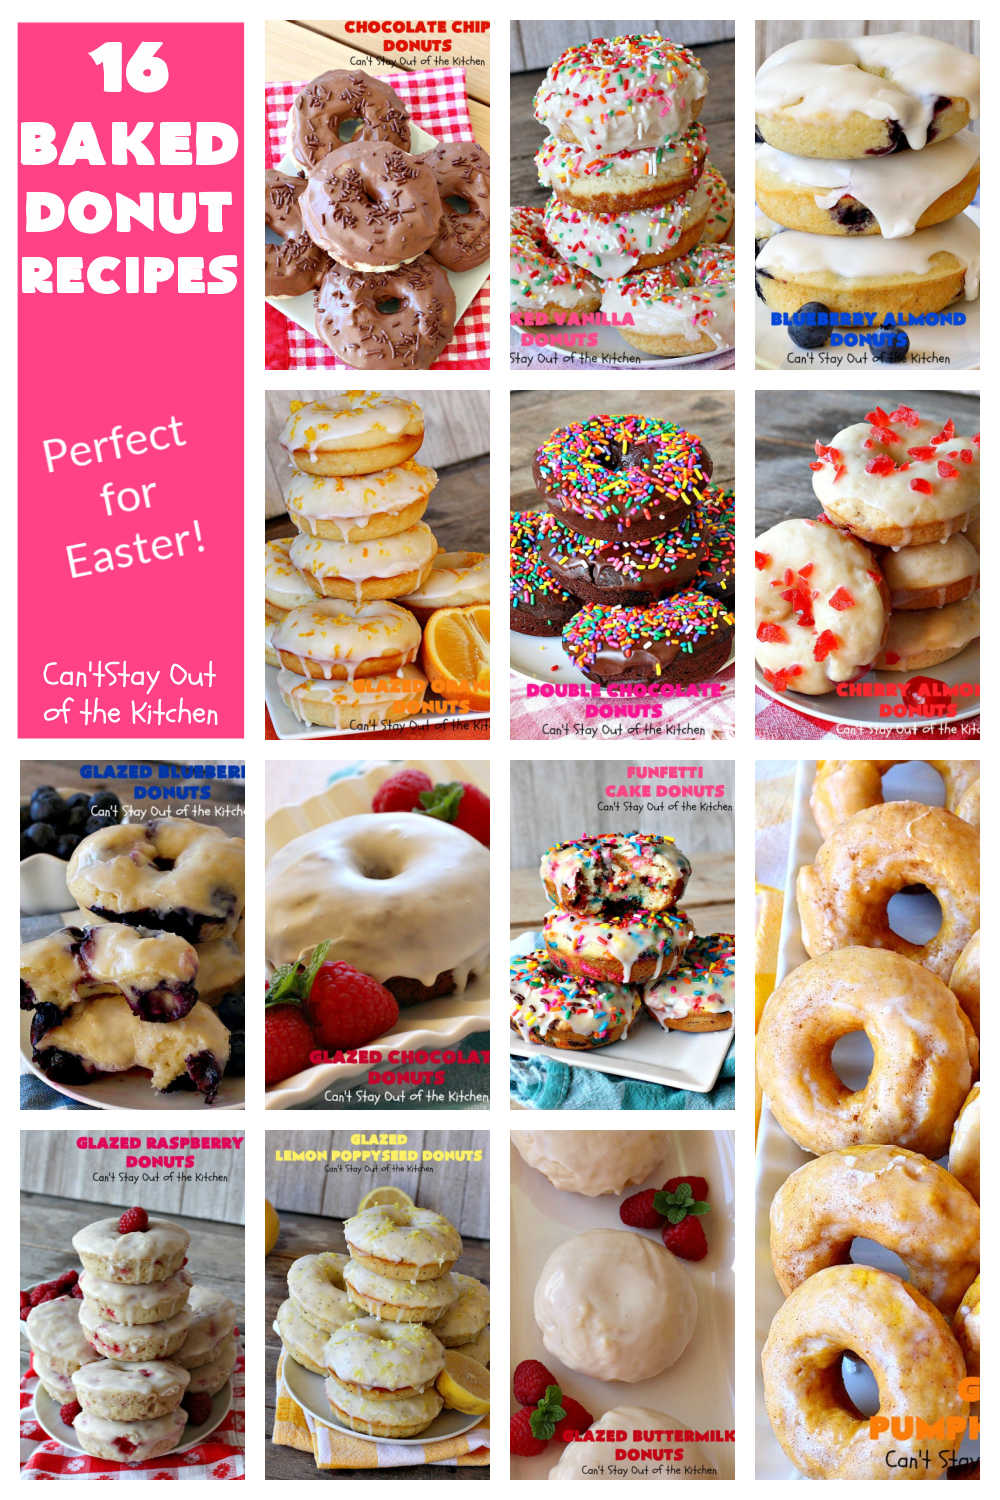 16 Baked Donut Recipes   Can't Stay Out of the Kitchen   16 of the BEST #donut #recipes ever! Perfect for #Easter or other #holiday #breakfasts. #BakedDonuts #donuts #16BakedDonutRecipes